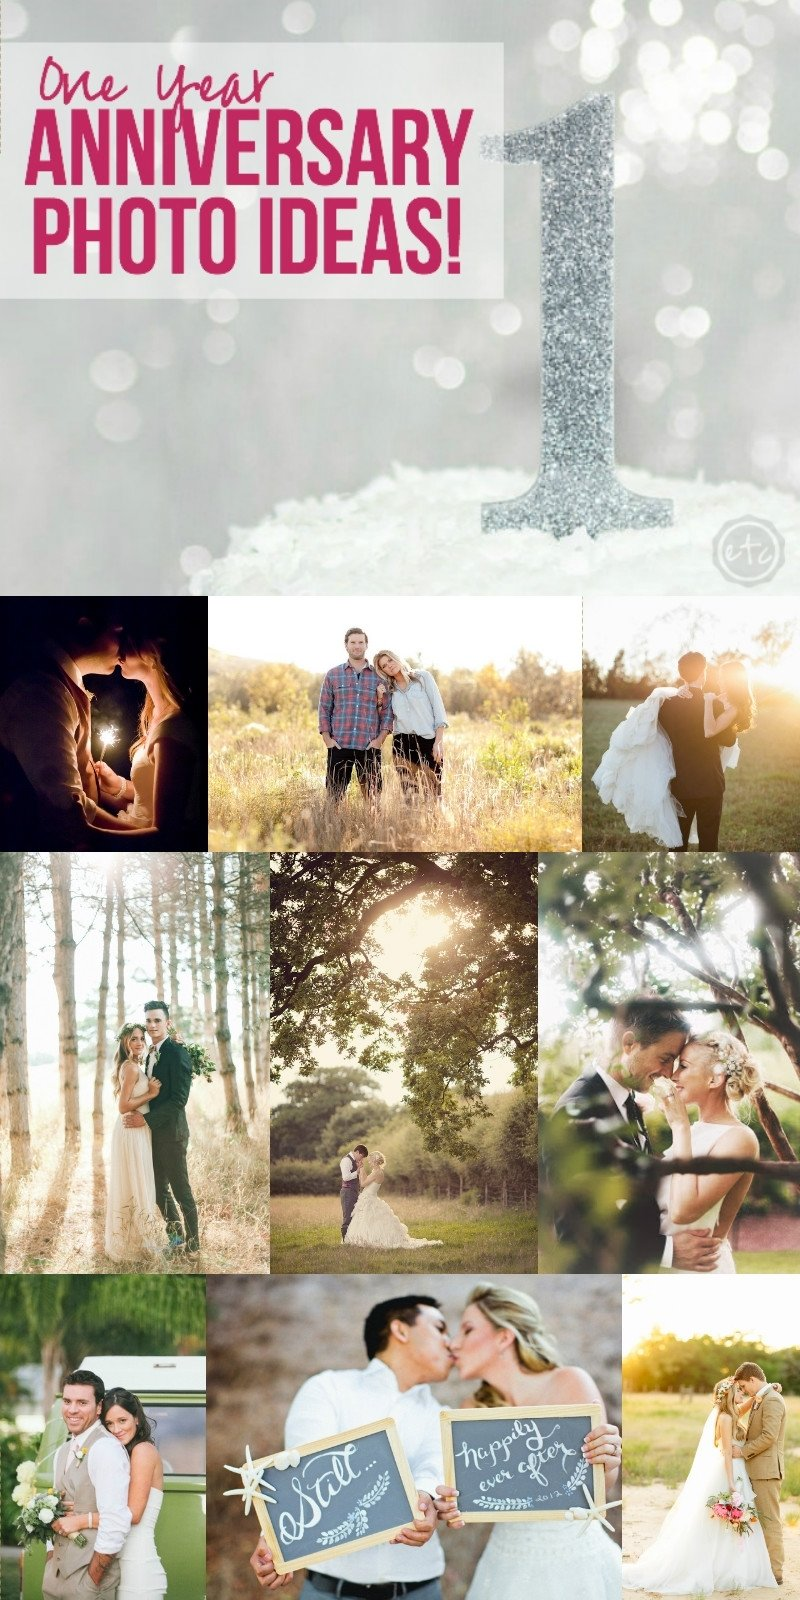 10 Great Ideas For 1 Year Anniversary one year anniversary photo ideas happily ever after etc 2020